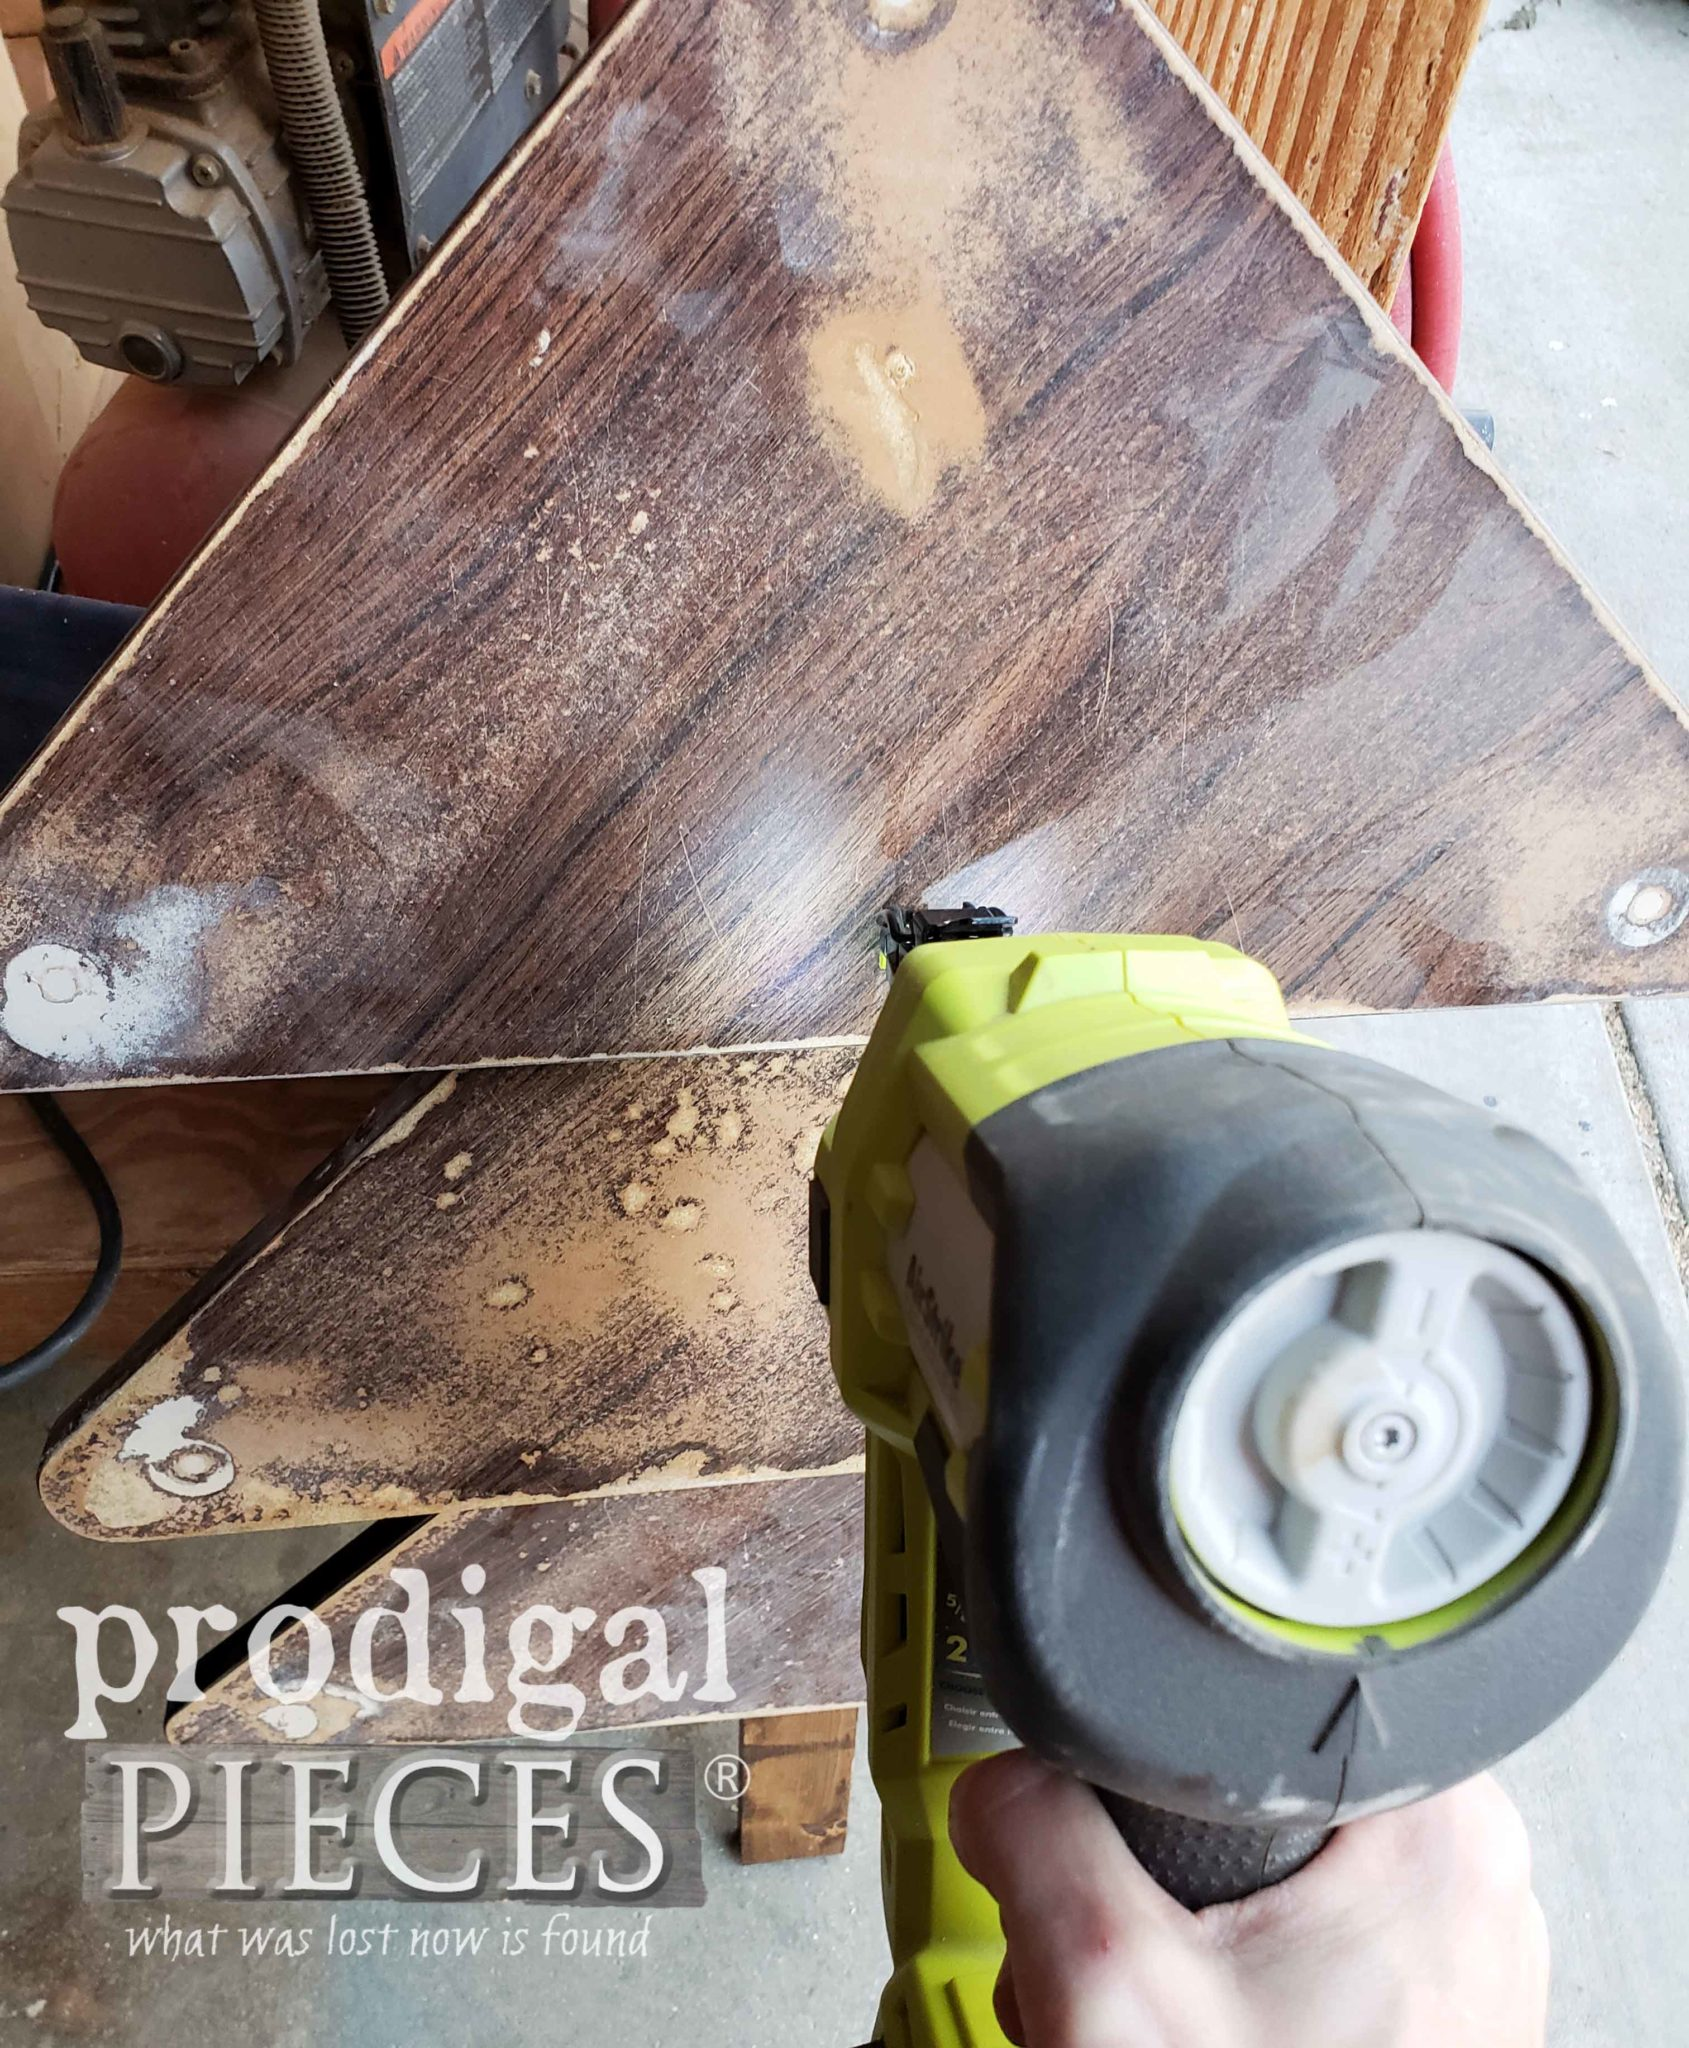 Ryobi Brad Nailer to Assemble DIY Upcycled Christmas Tree | prodigalpieces.com